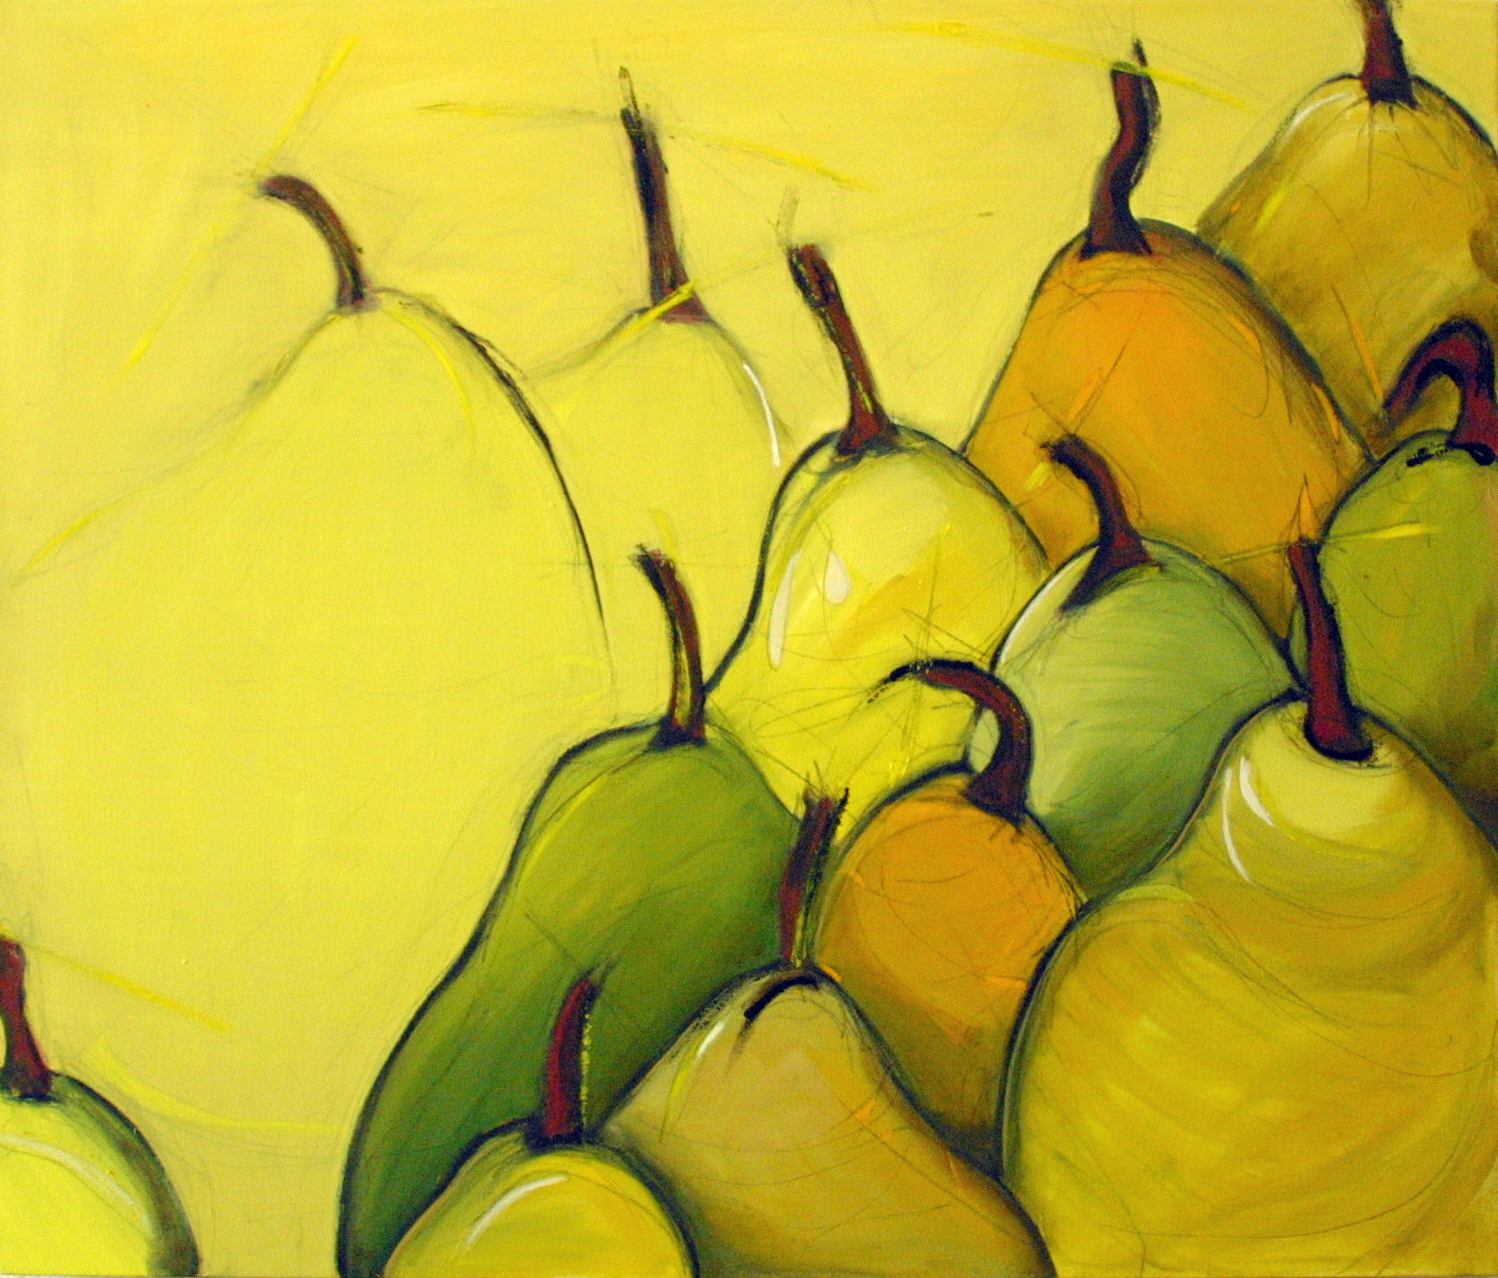 Thirteen Pears